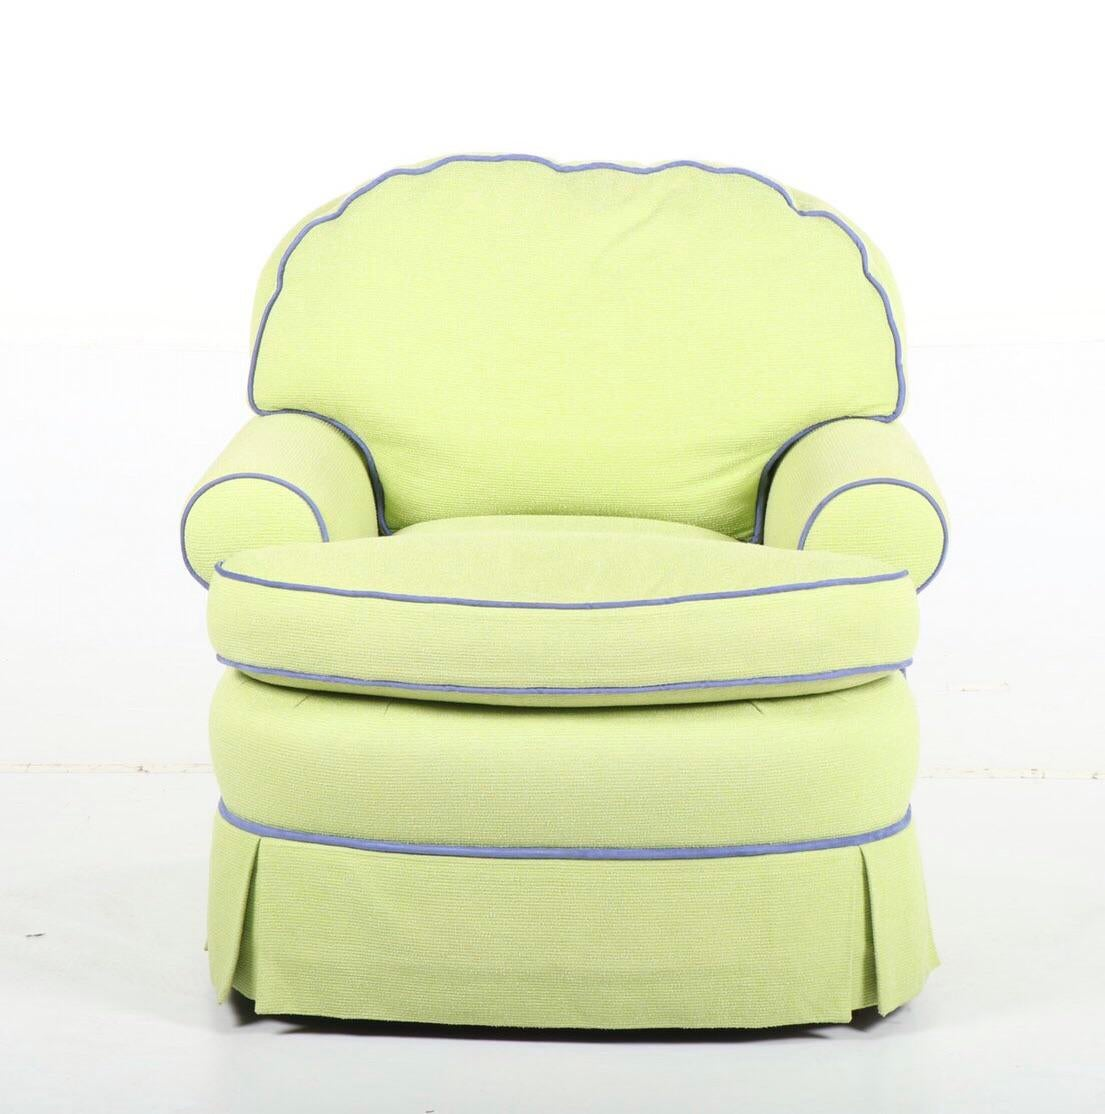 yellow upholstered accent chair office chairs zejtun contemporary chairish arm by summer hill ltd this comfortable fun provides a